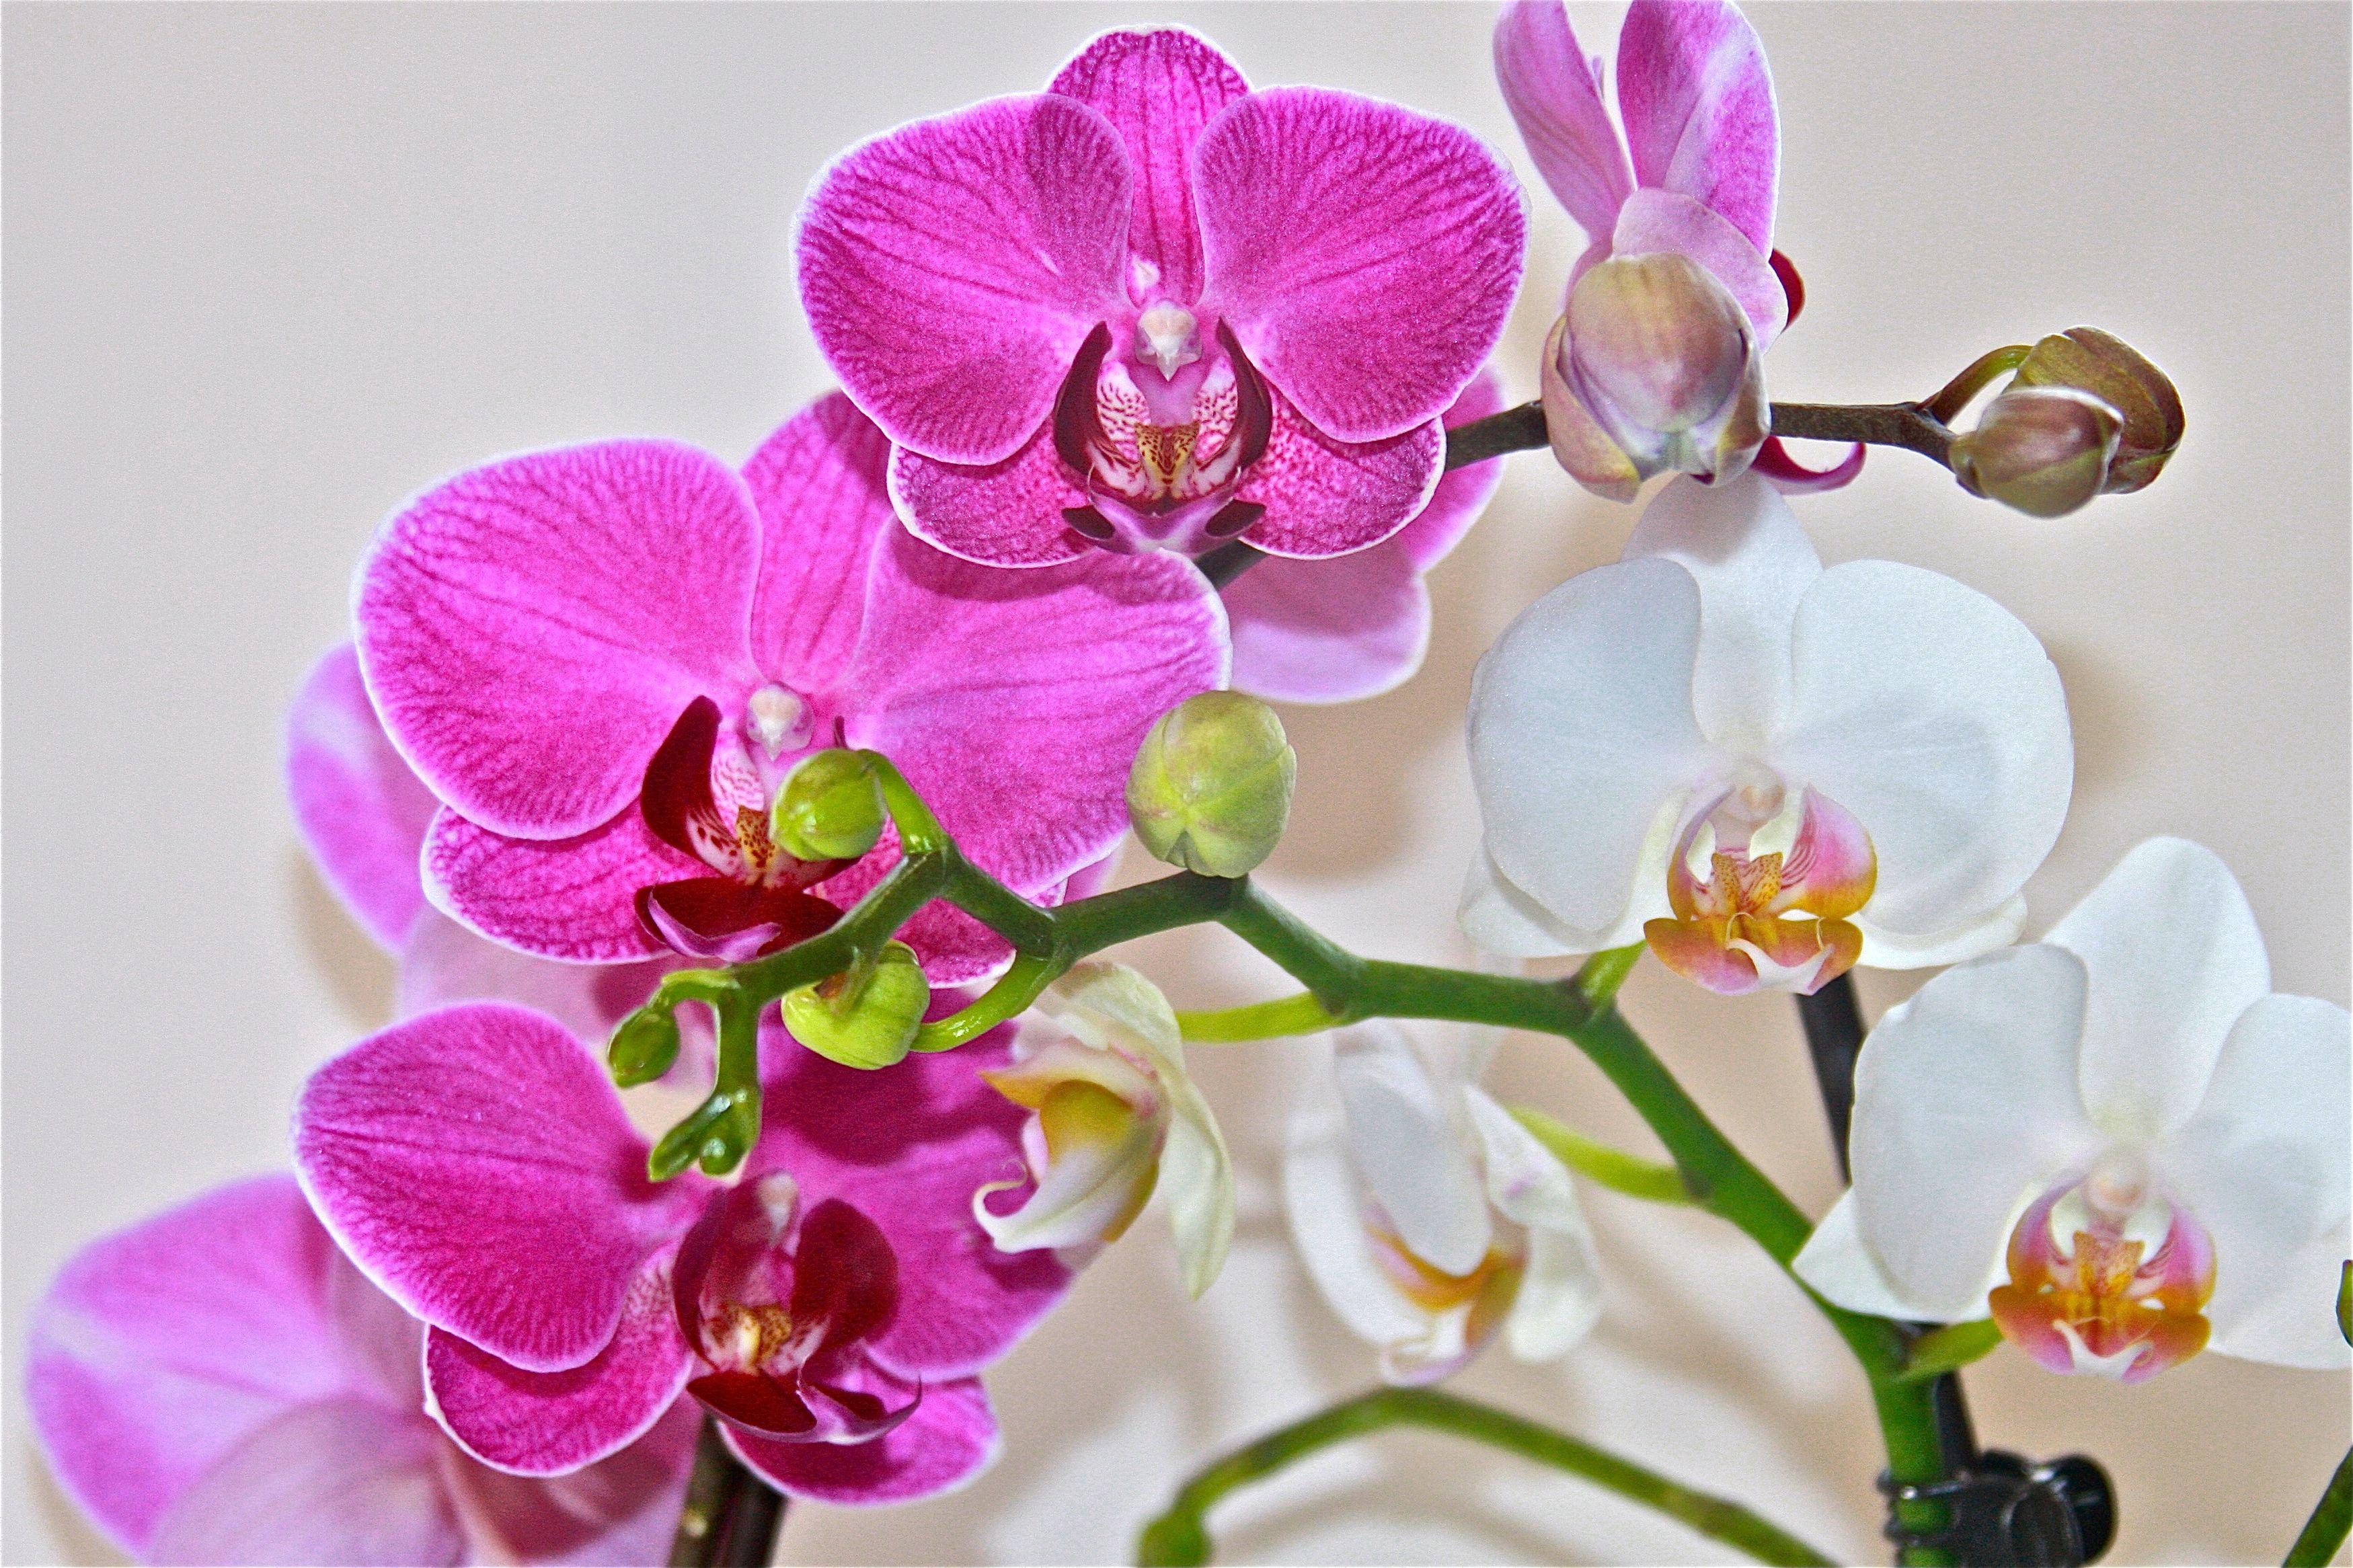 My phalaenopsis orchids are in bloom words and random